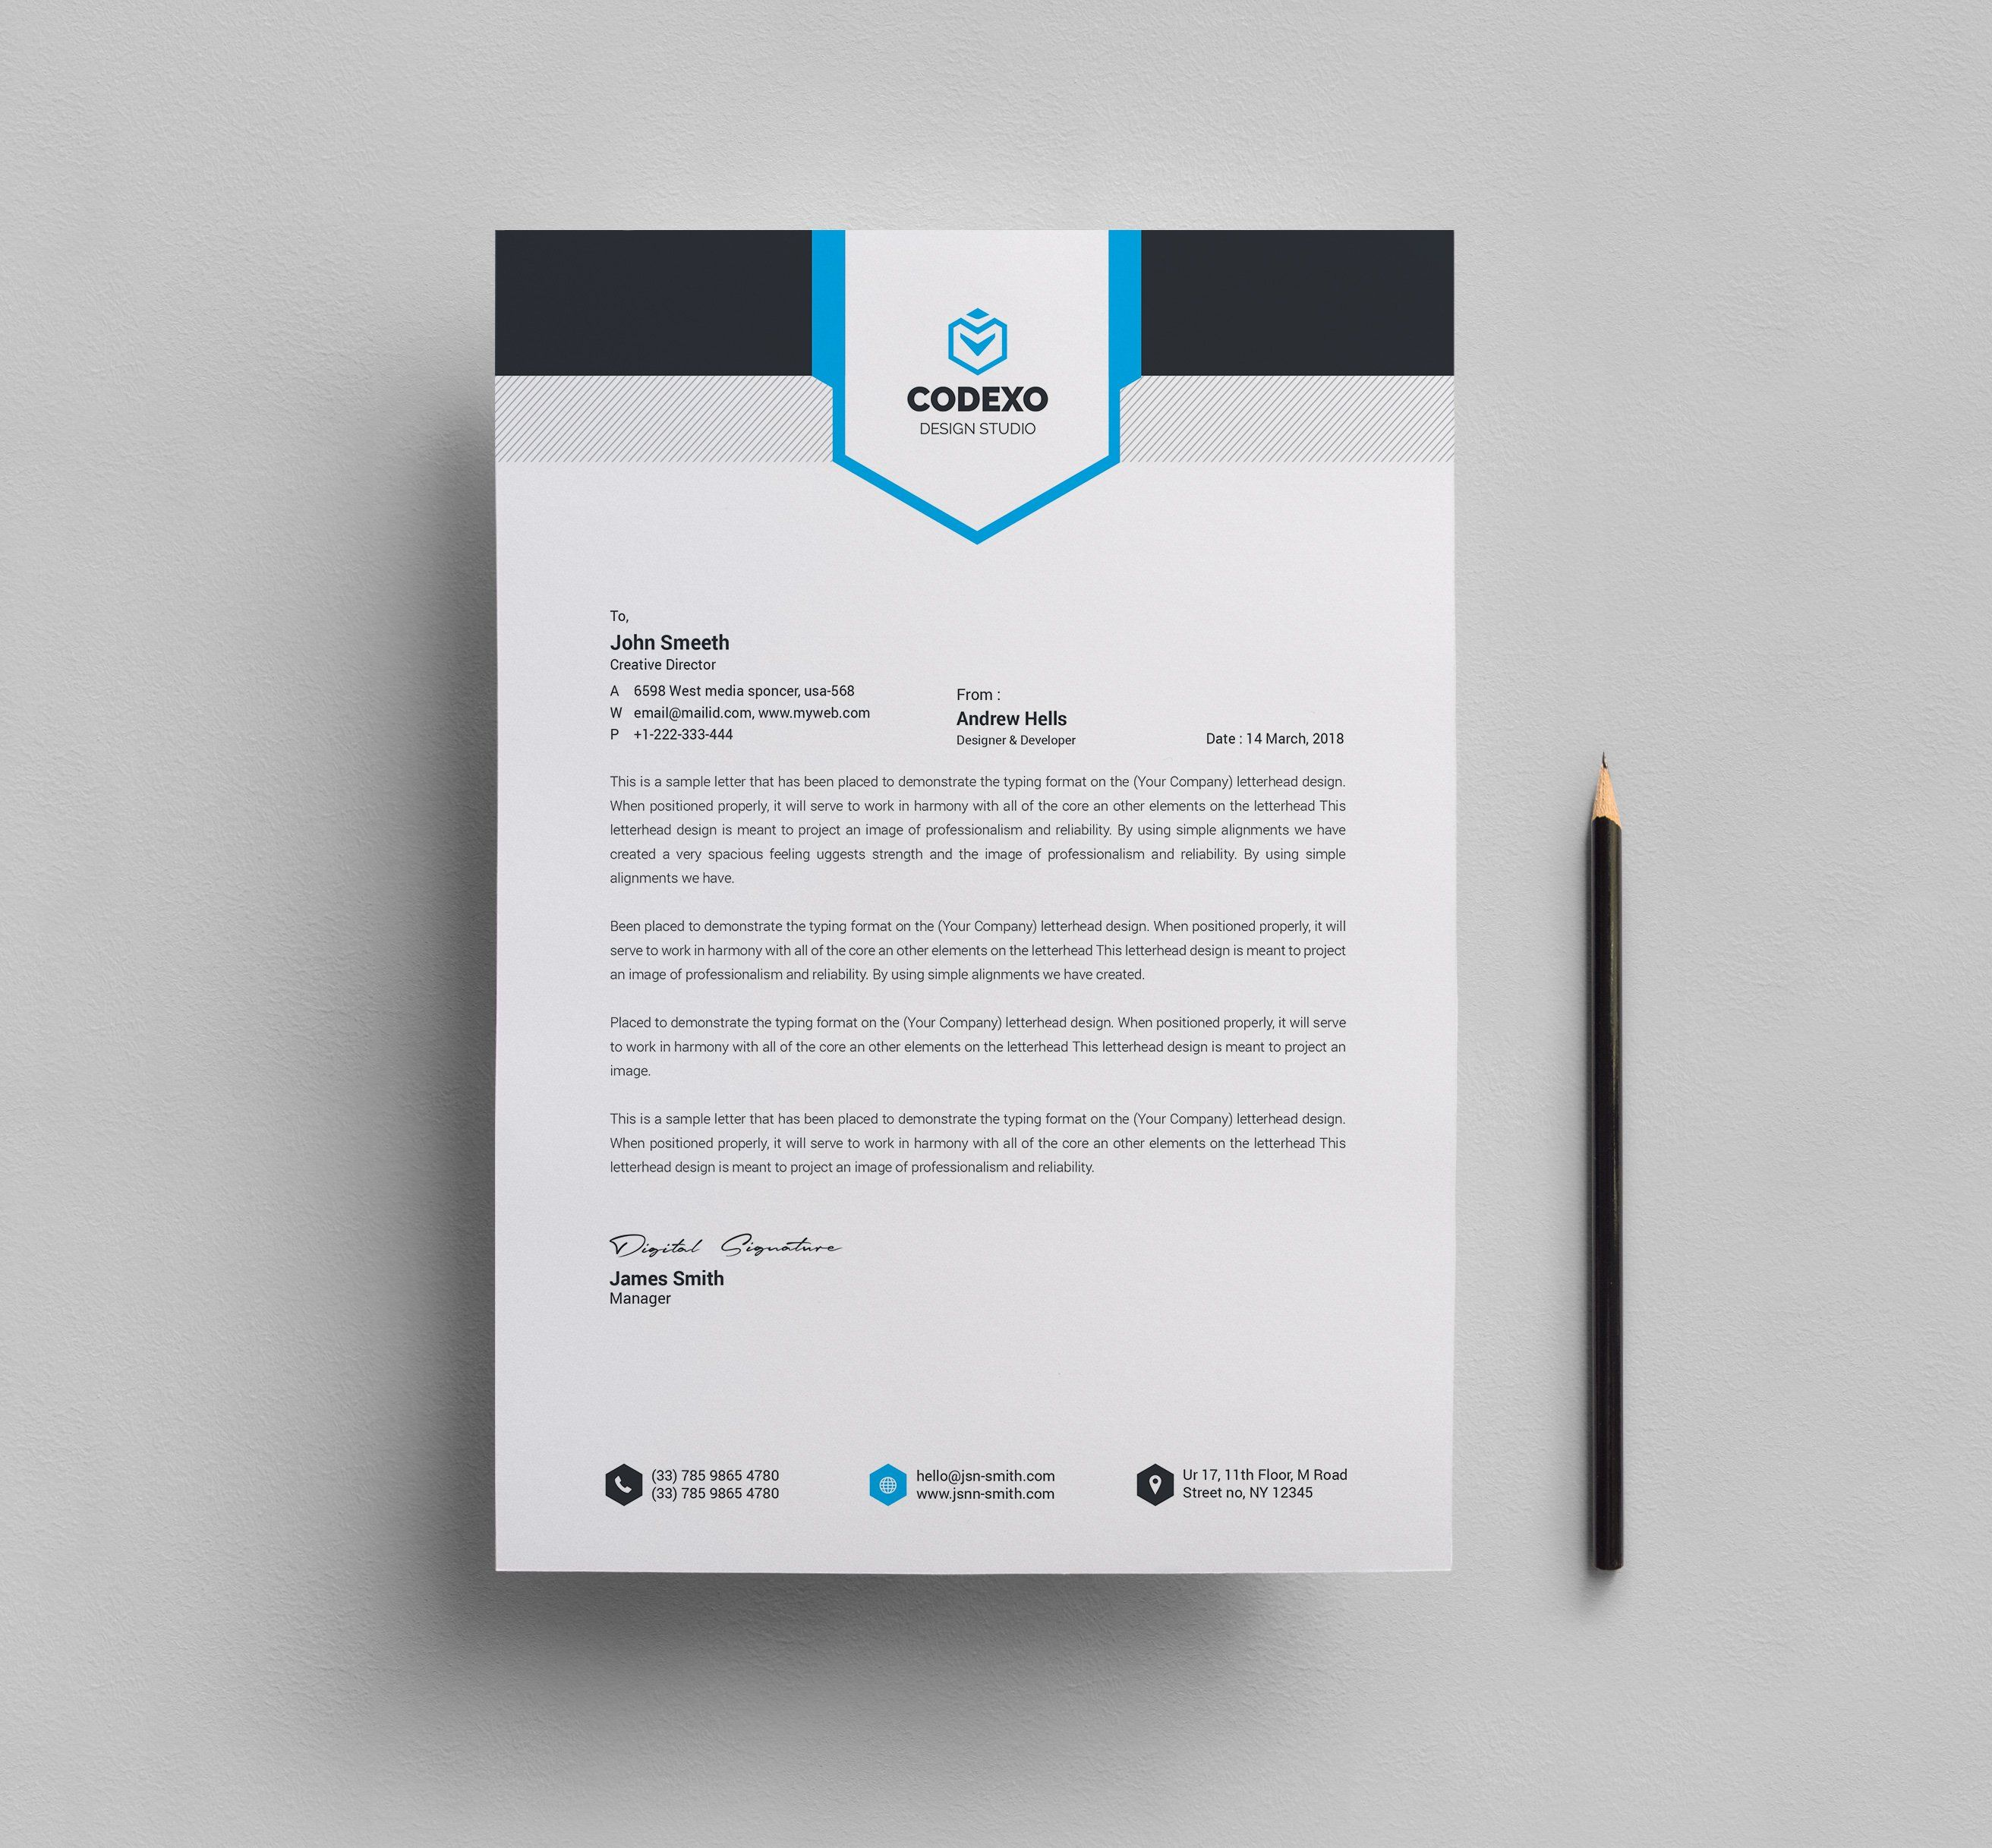 letterhead template template, resume format for law graduates freshers entry level business management civil engineer cv in word